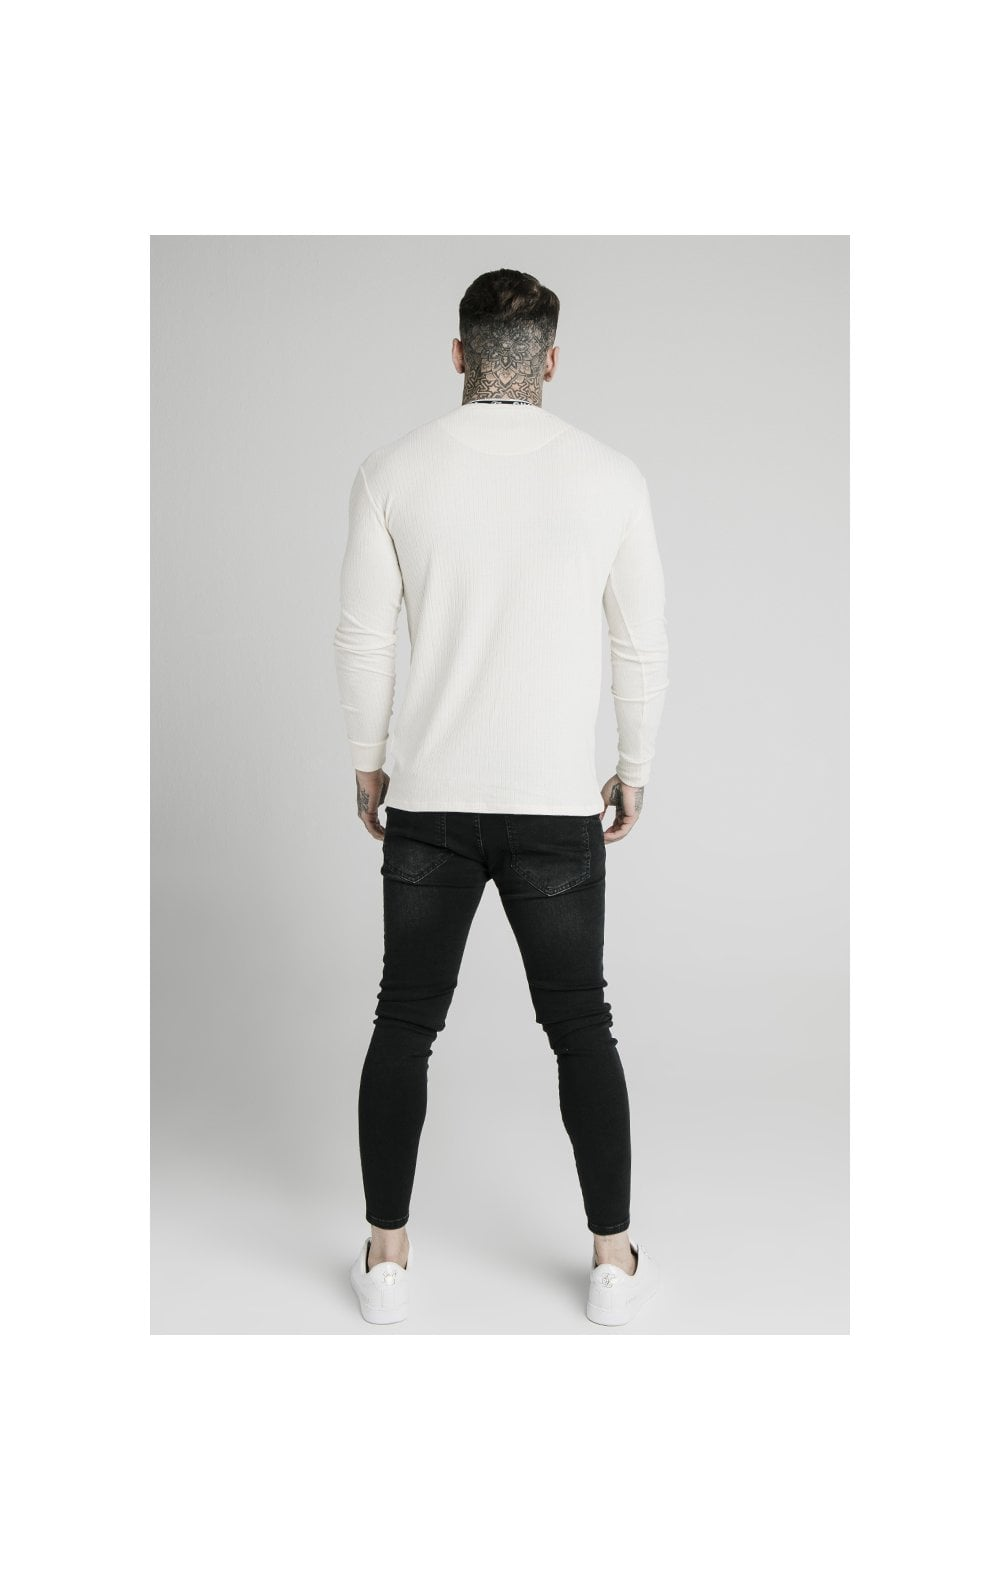 SikSilk L/S Rib Knit Tee - Off White (5)